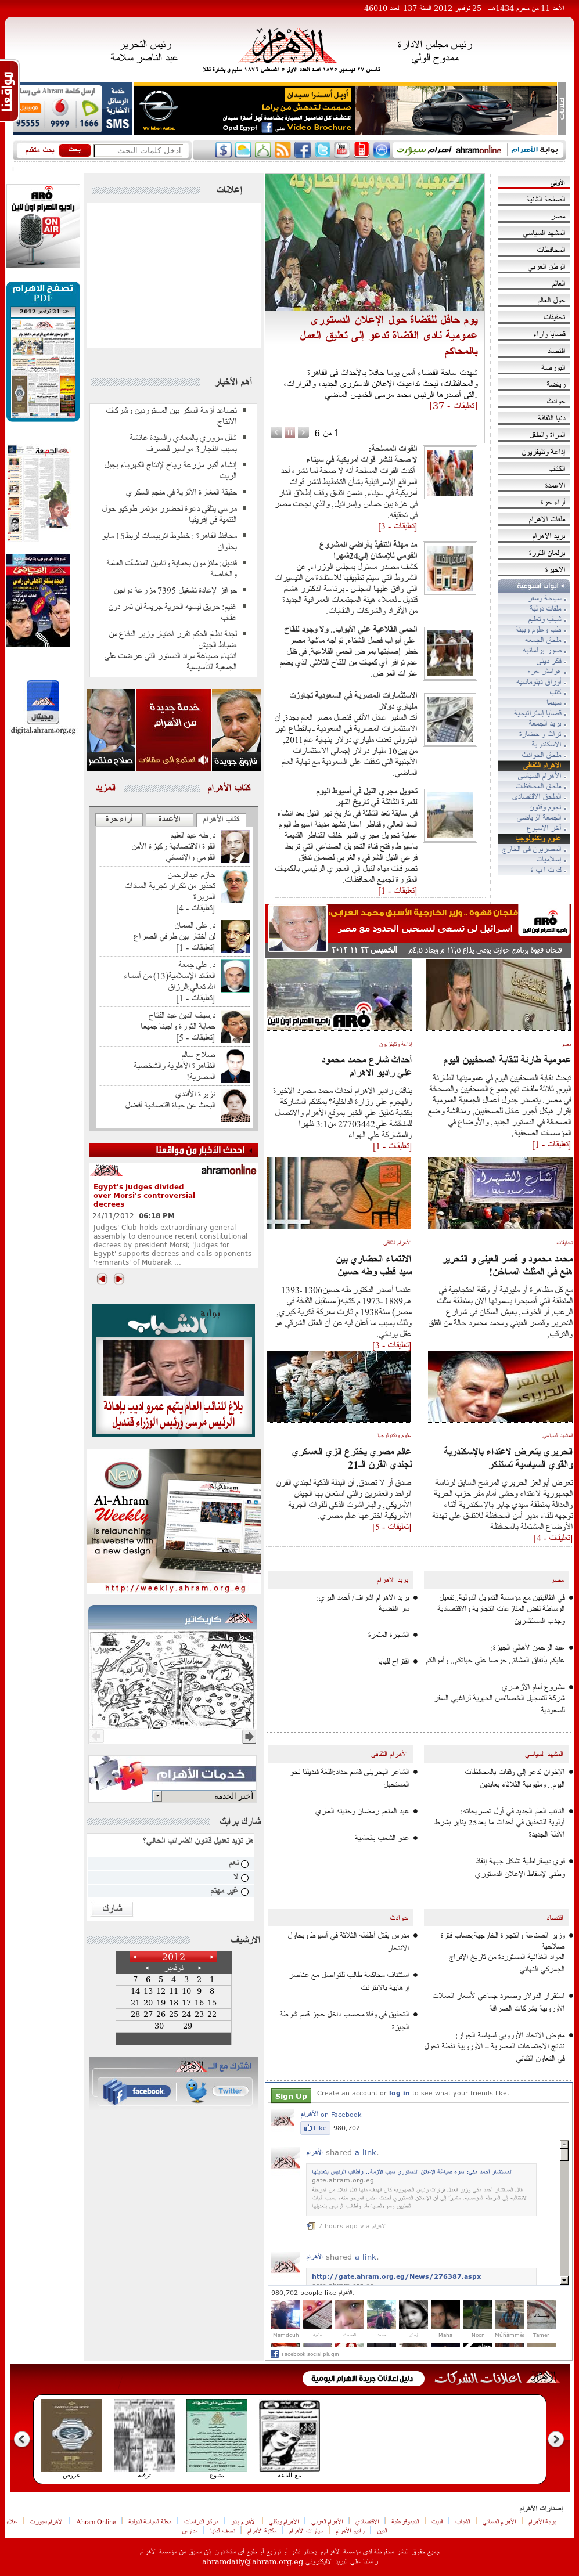 Al-Ahram at Sunday Nov. 25, 2012, 6 a.m. UTC